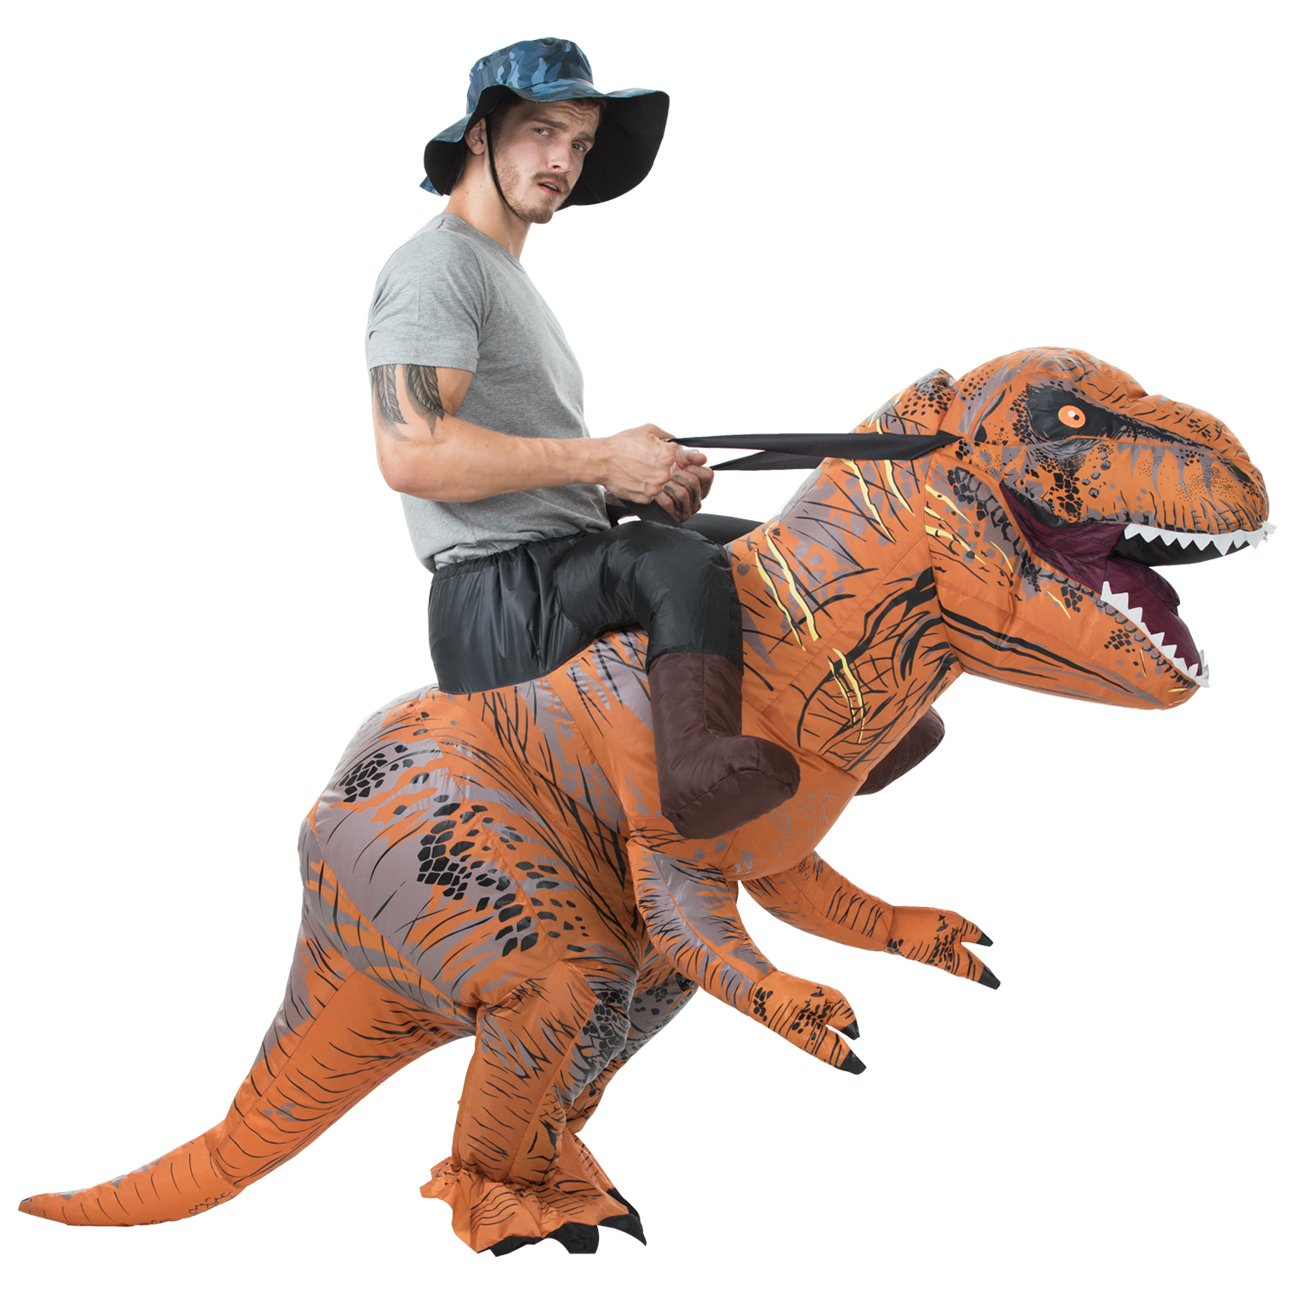 T-Rex Riding Costume Adult Inflatable Dinosaur Costume for Halloween, Christmas Party Halloween costums 2018 Christmas Party.